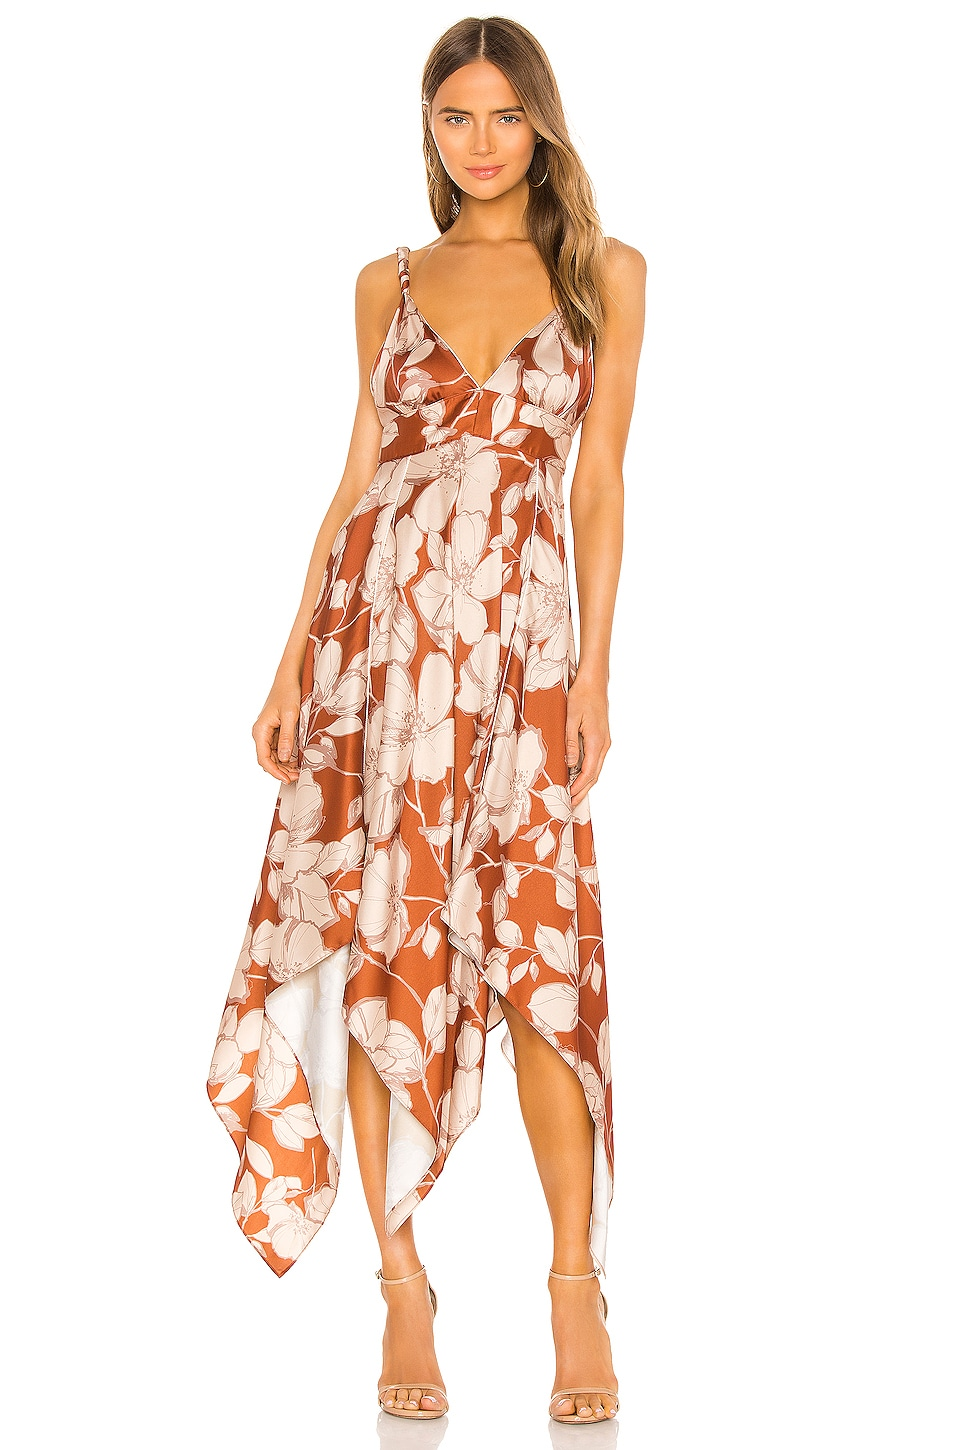 Alexis Gaiana Dress in Sand Floral